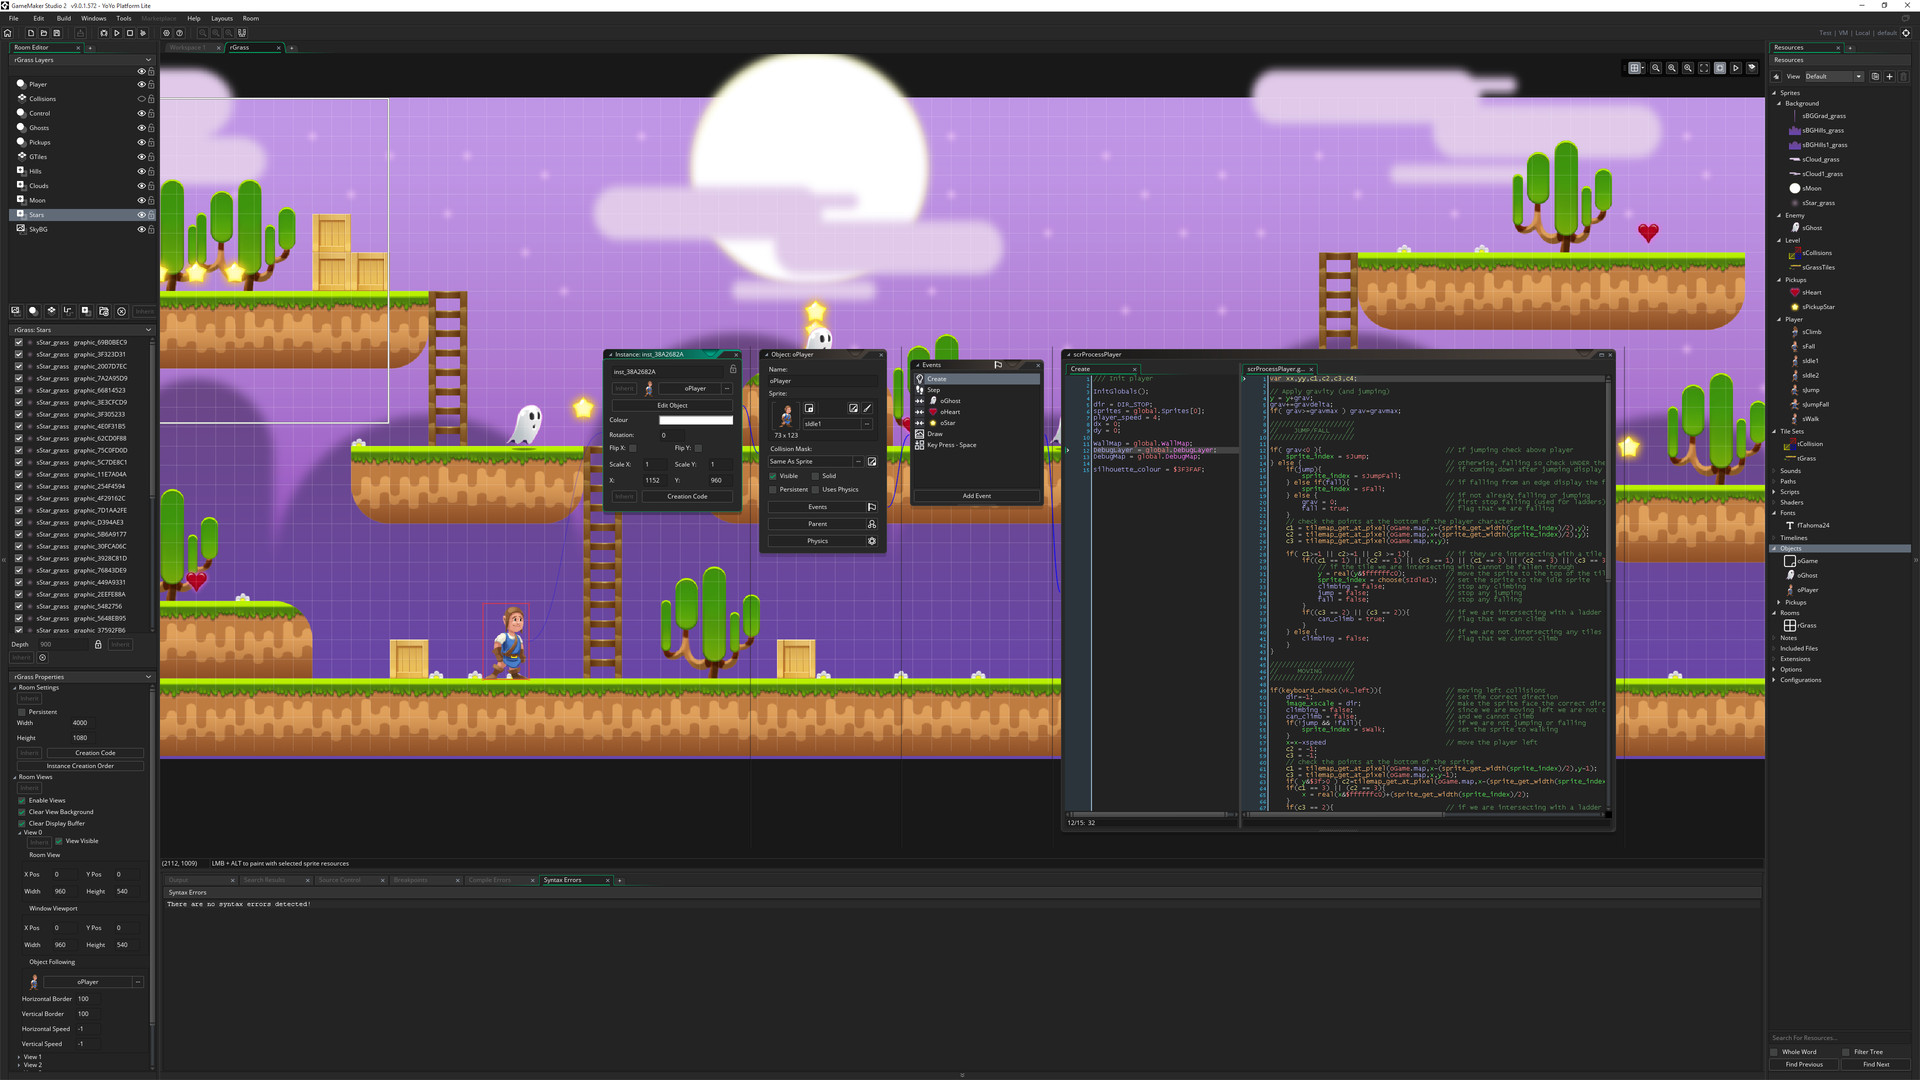 gamemaker studio 2 crack free download